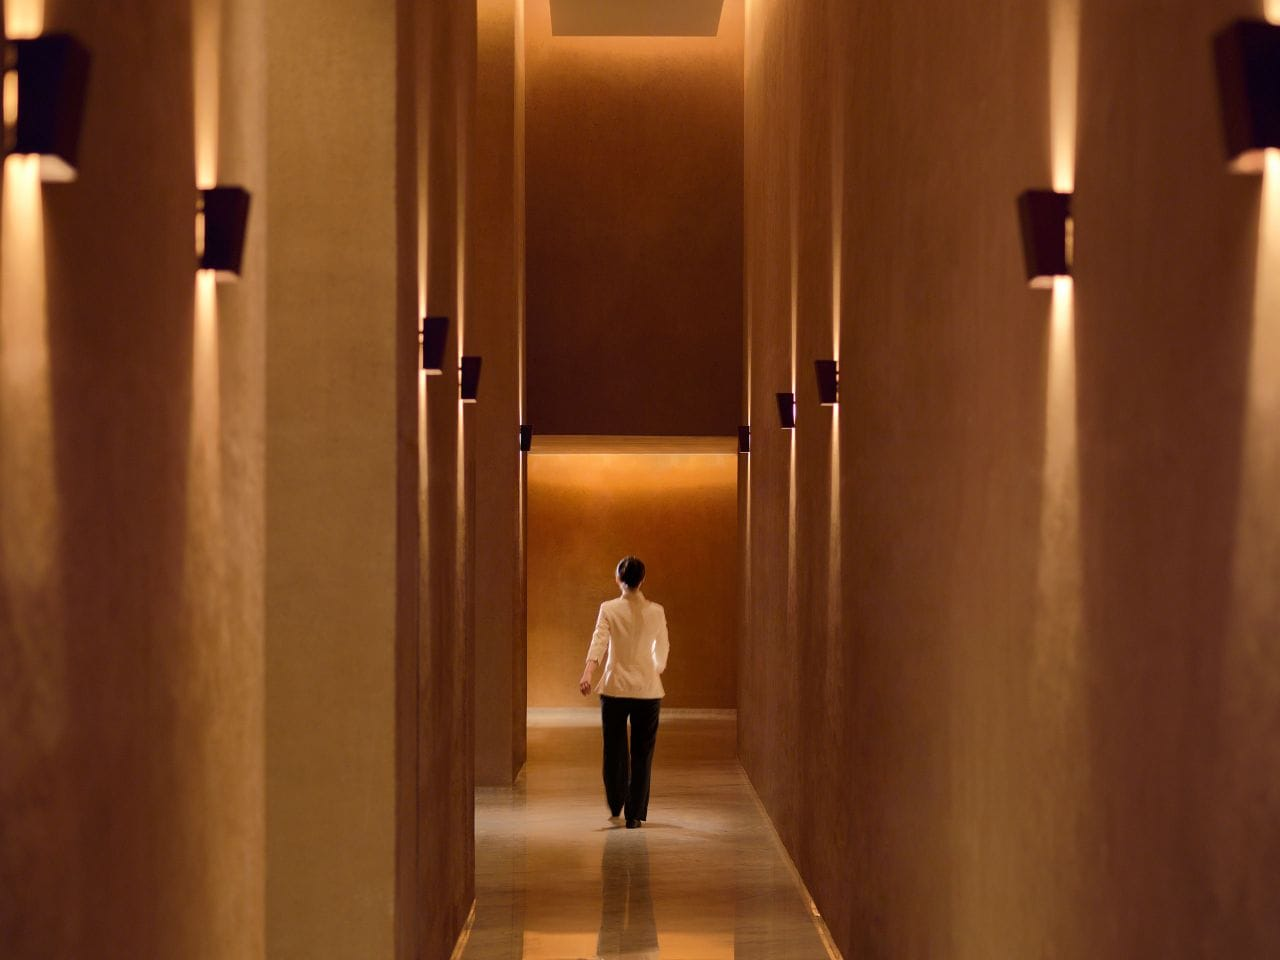 The Spa hallway